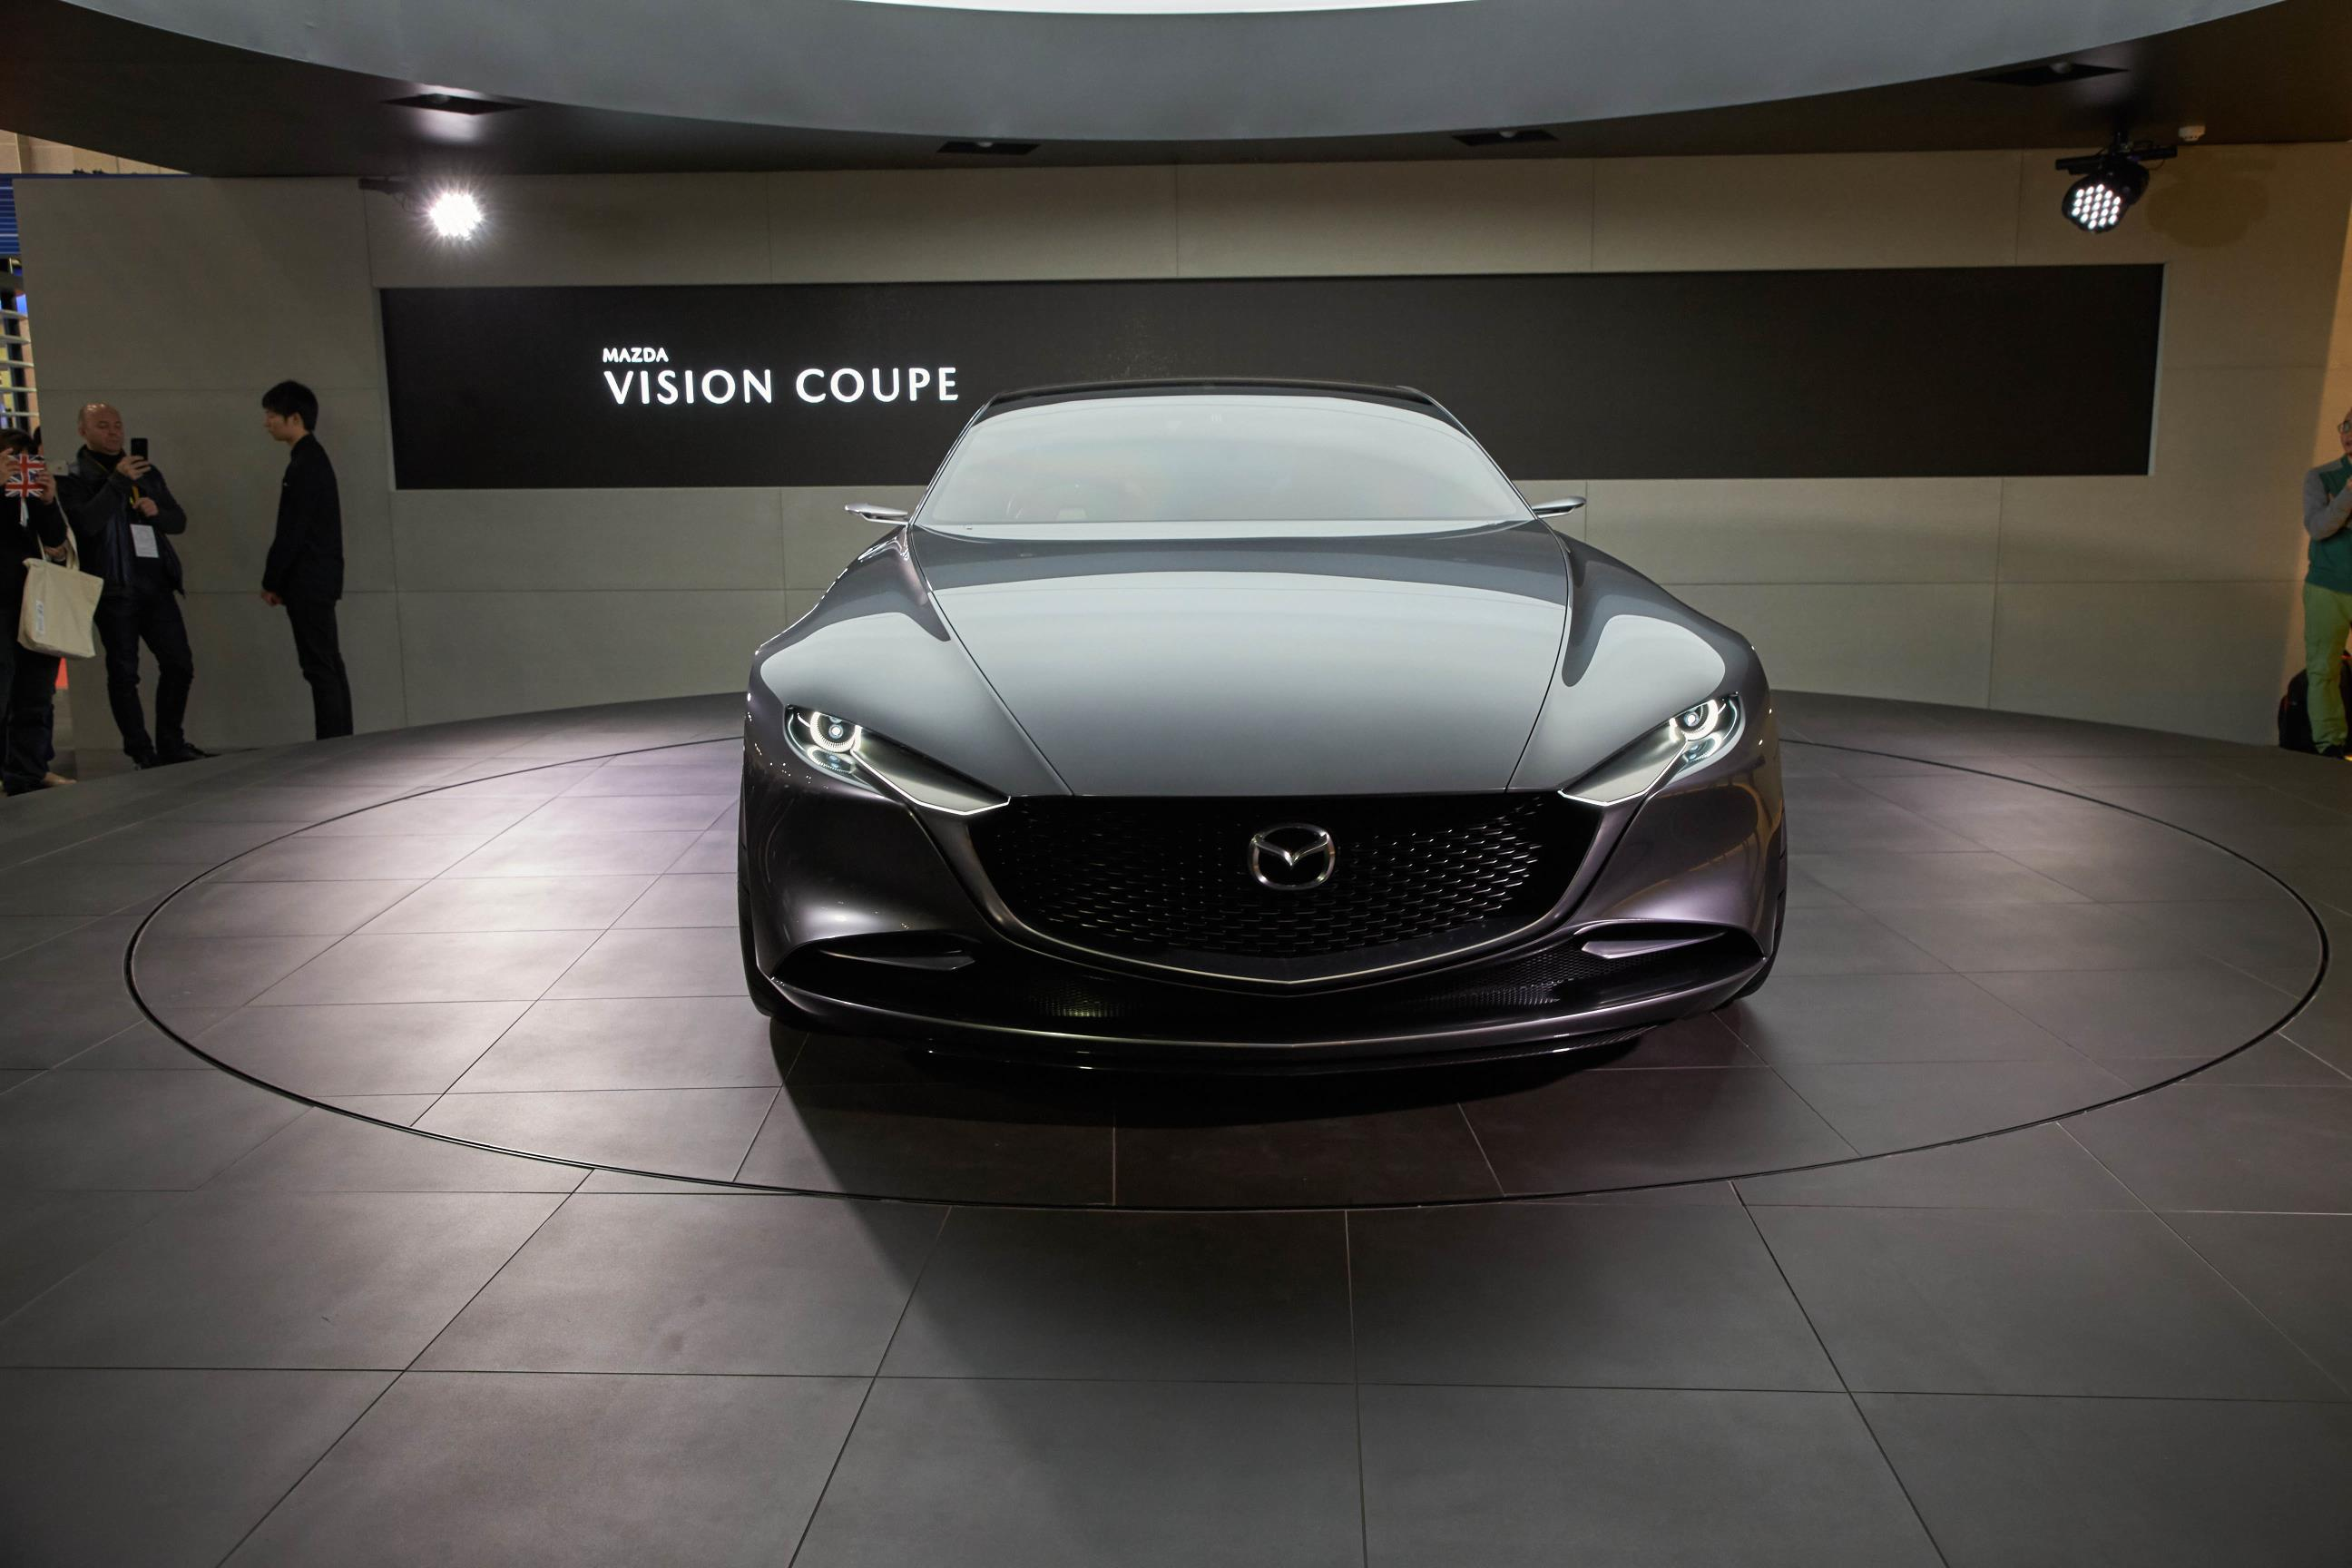 Mazda Kai And Vision Coupe Concepts Reveal Carbon Fiber In Tokyo